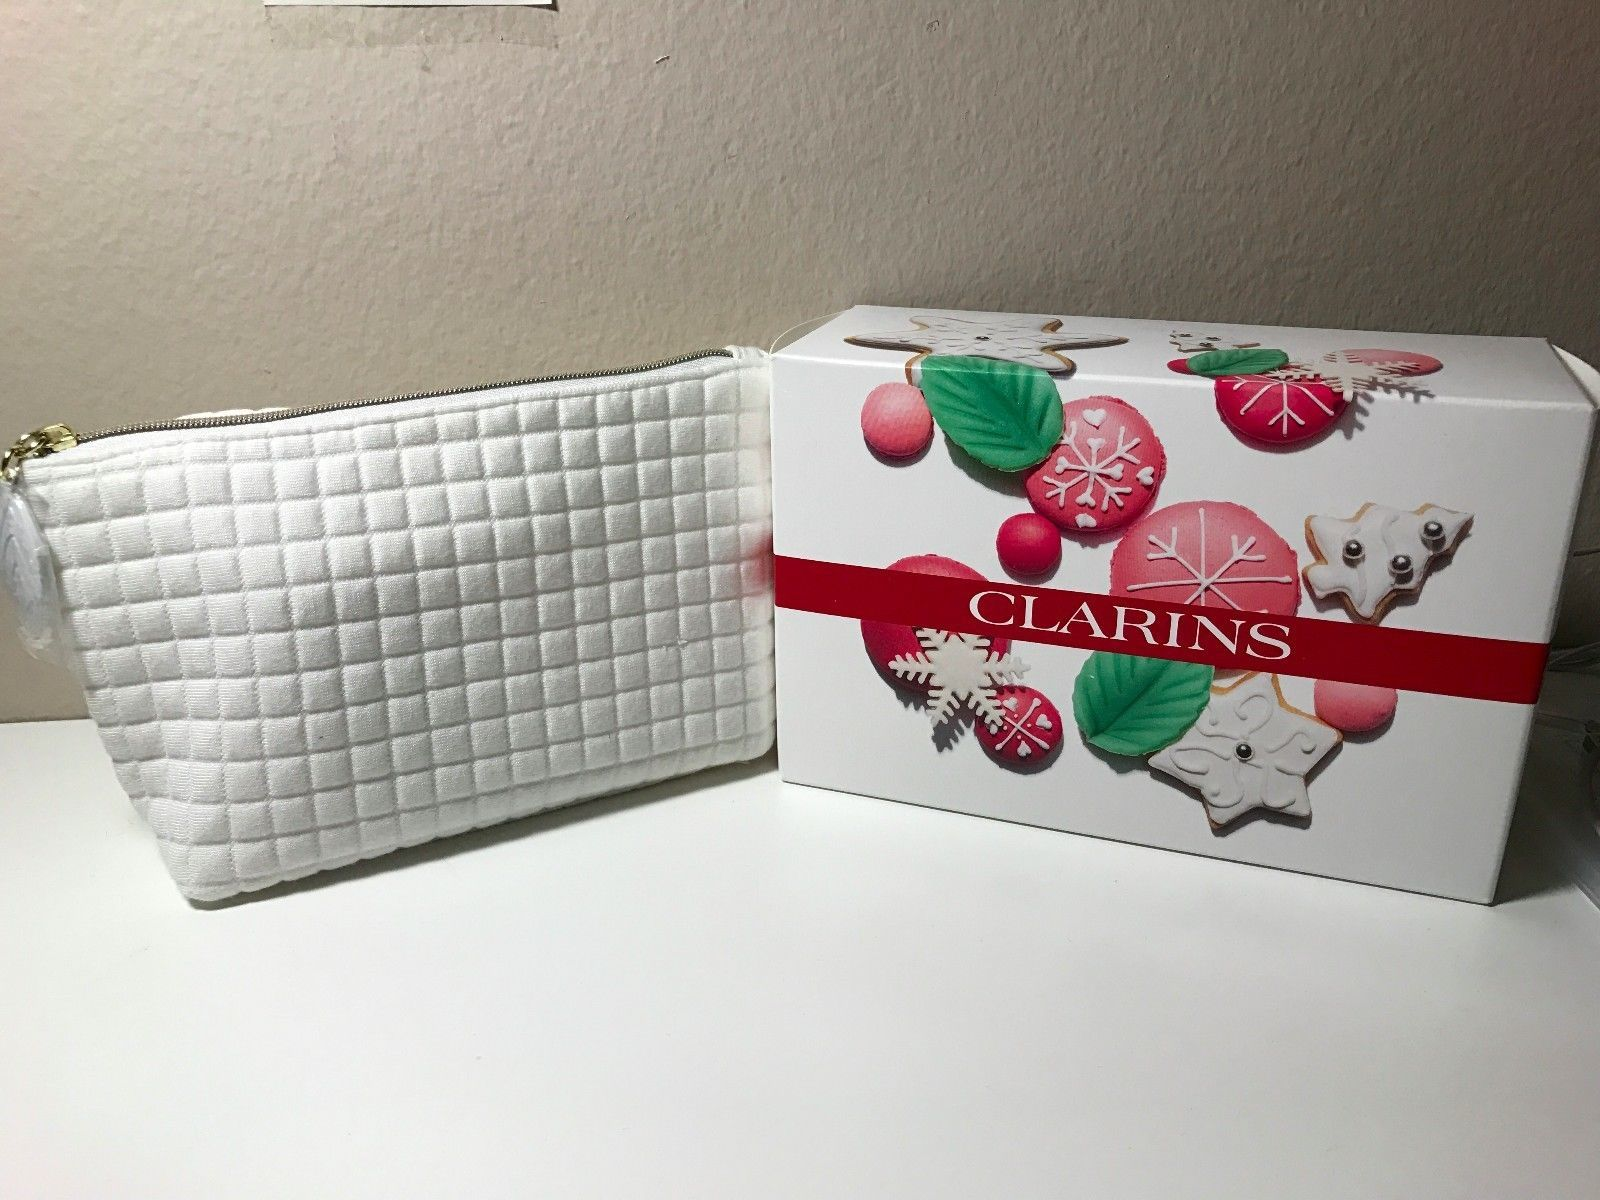 New! CLARINS Sweet Kisses Collection Leaf White Golden Makeup Travel Bag Case https://t.co/c7DJXowuou https://t.co/xn3o7uqD84